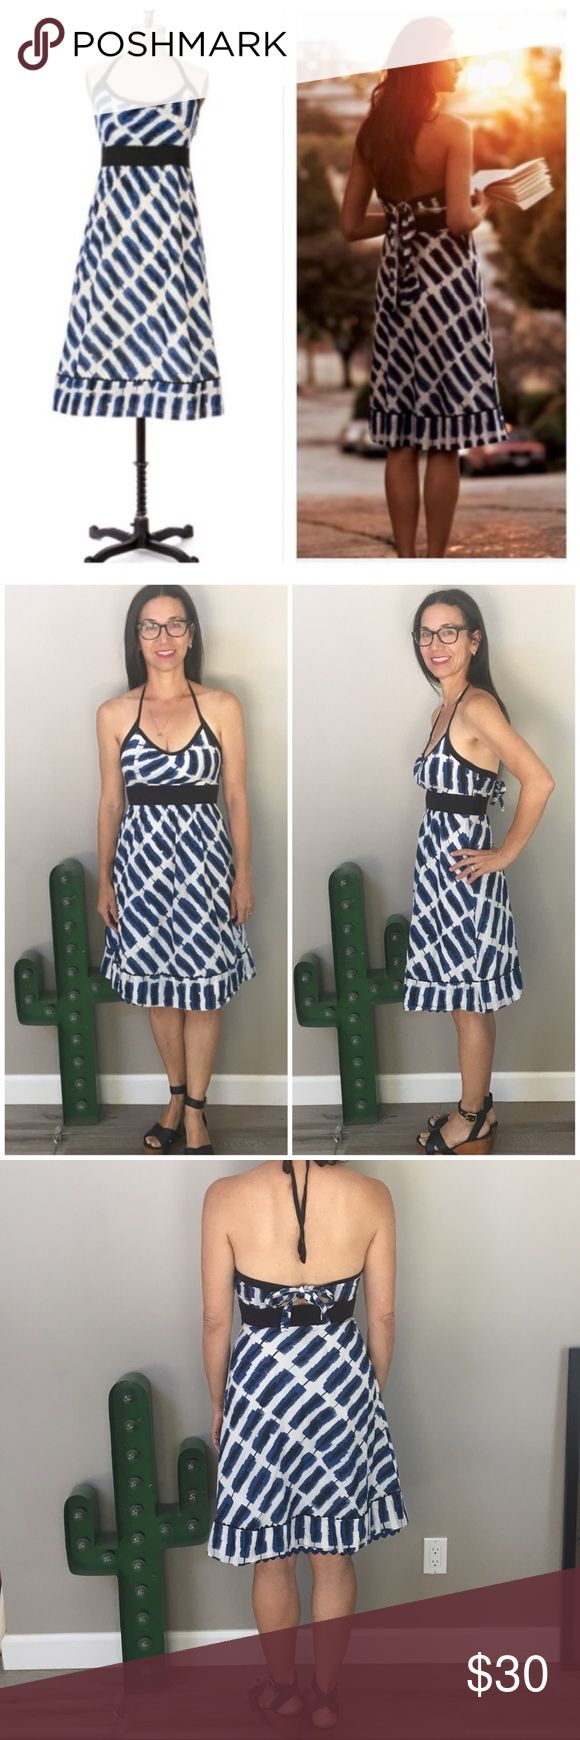 """HP5/27🎉Anthropologie Maeve Setting Westward dress Setting Westward halter dress from Maeve purchased at Anthropologie. Scattered indigo shapes float atop a gauzy off-white voile horizon. Inset at the empire waist with a comfortable band of black jersey. Beautiful blue ric-rac detail at lining hem.Side zipper. Tie halter neck & tie at waist in back make adjusting a breeze! Approx measurements when laid flat: length from top of bodice to hem 32"""". Width at band 12"""". Good preworn condition w…"""